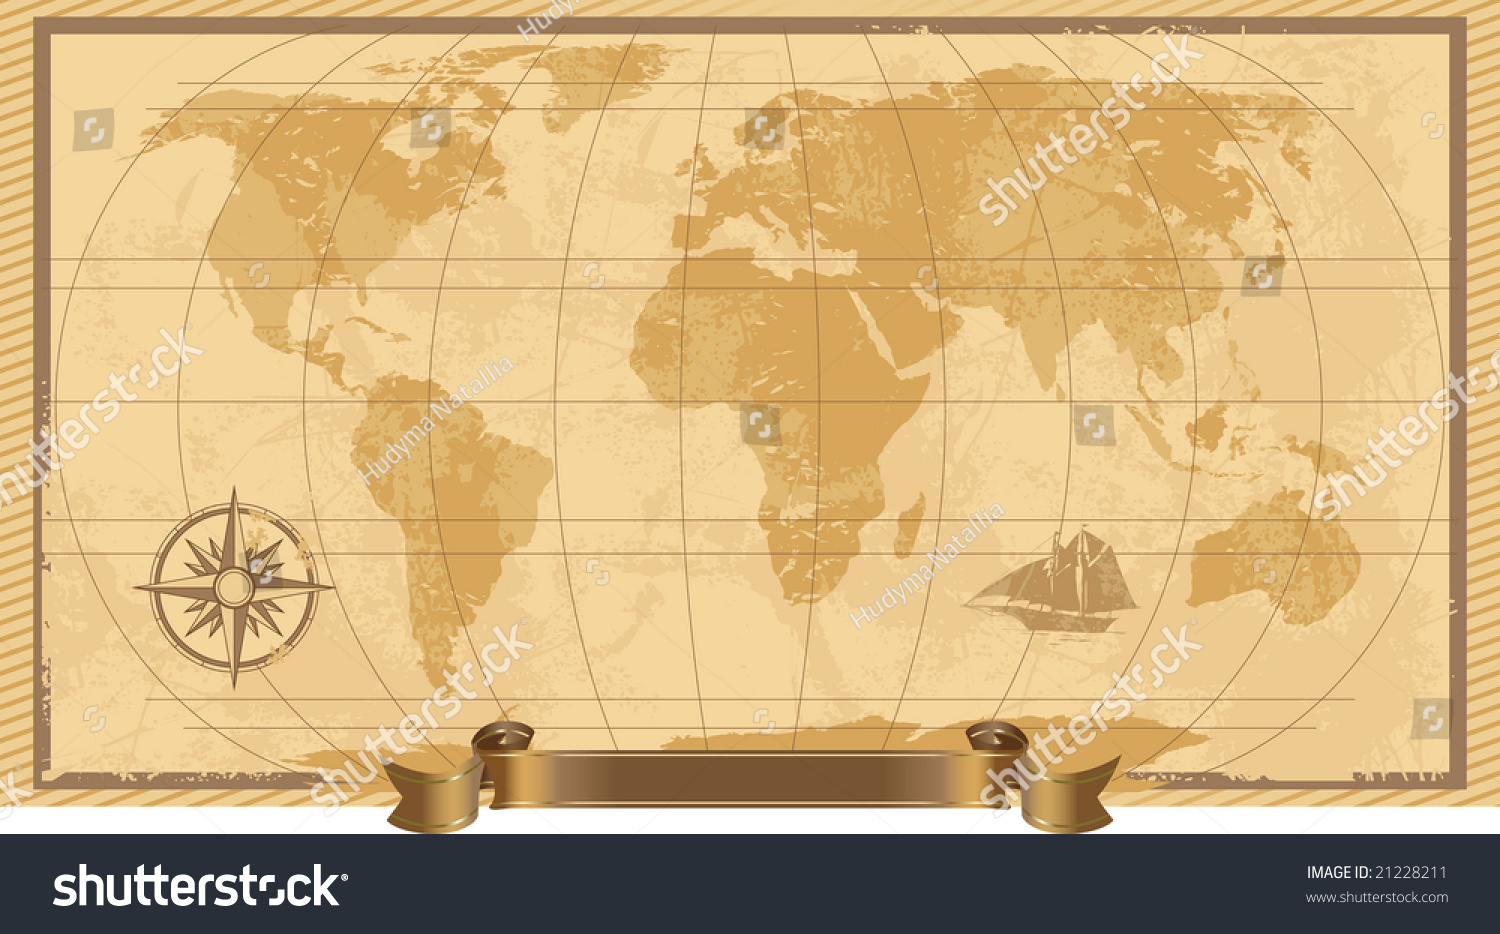 Grunge rustic world map illustration stock illustration 21228211 a grunge rustic world map illustration gumiabroncs Images